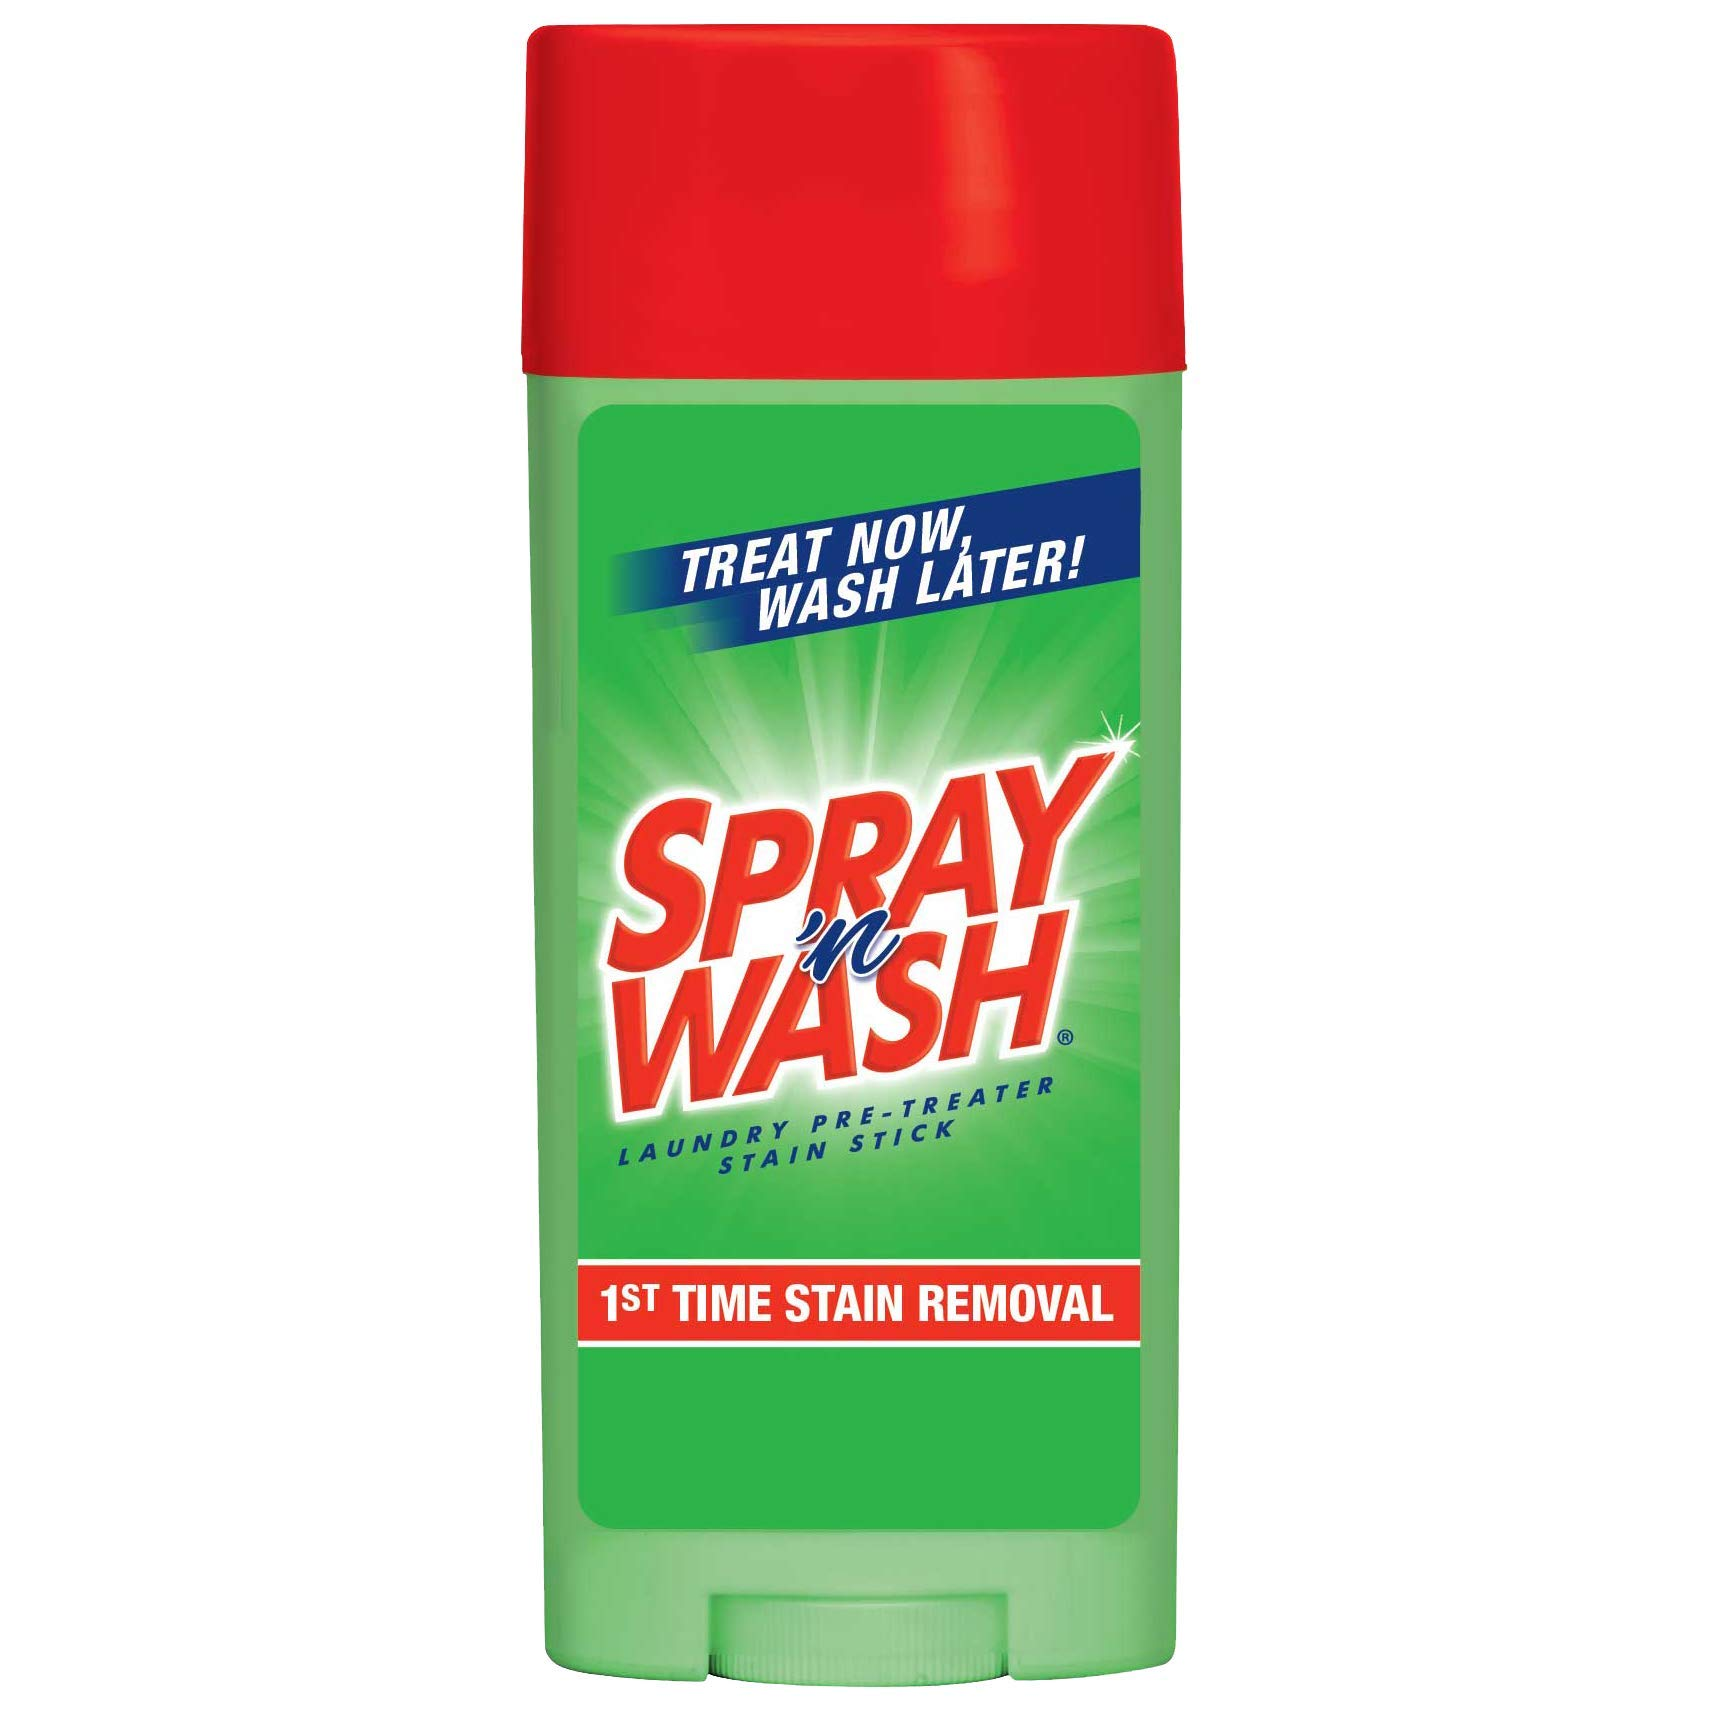 Spray N Wash, Pre Treat Laundry Stain Stick 3.0 Ounces (Pack of 7)